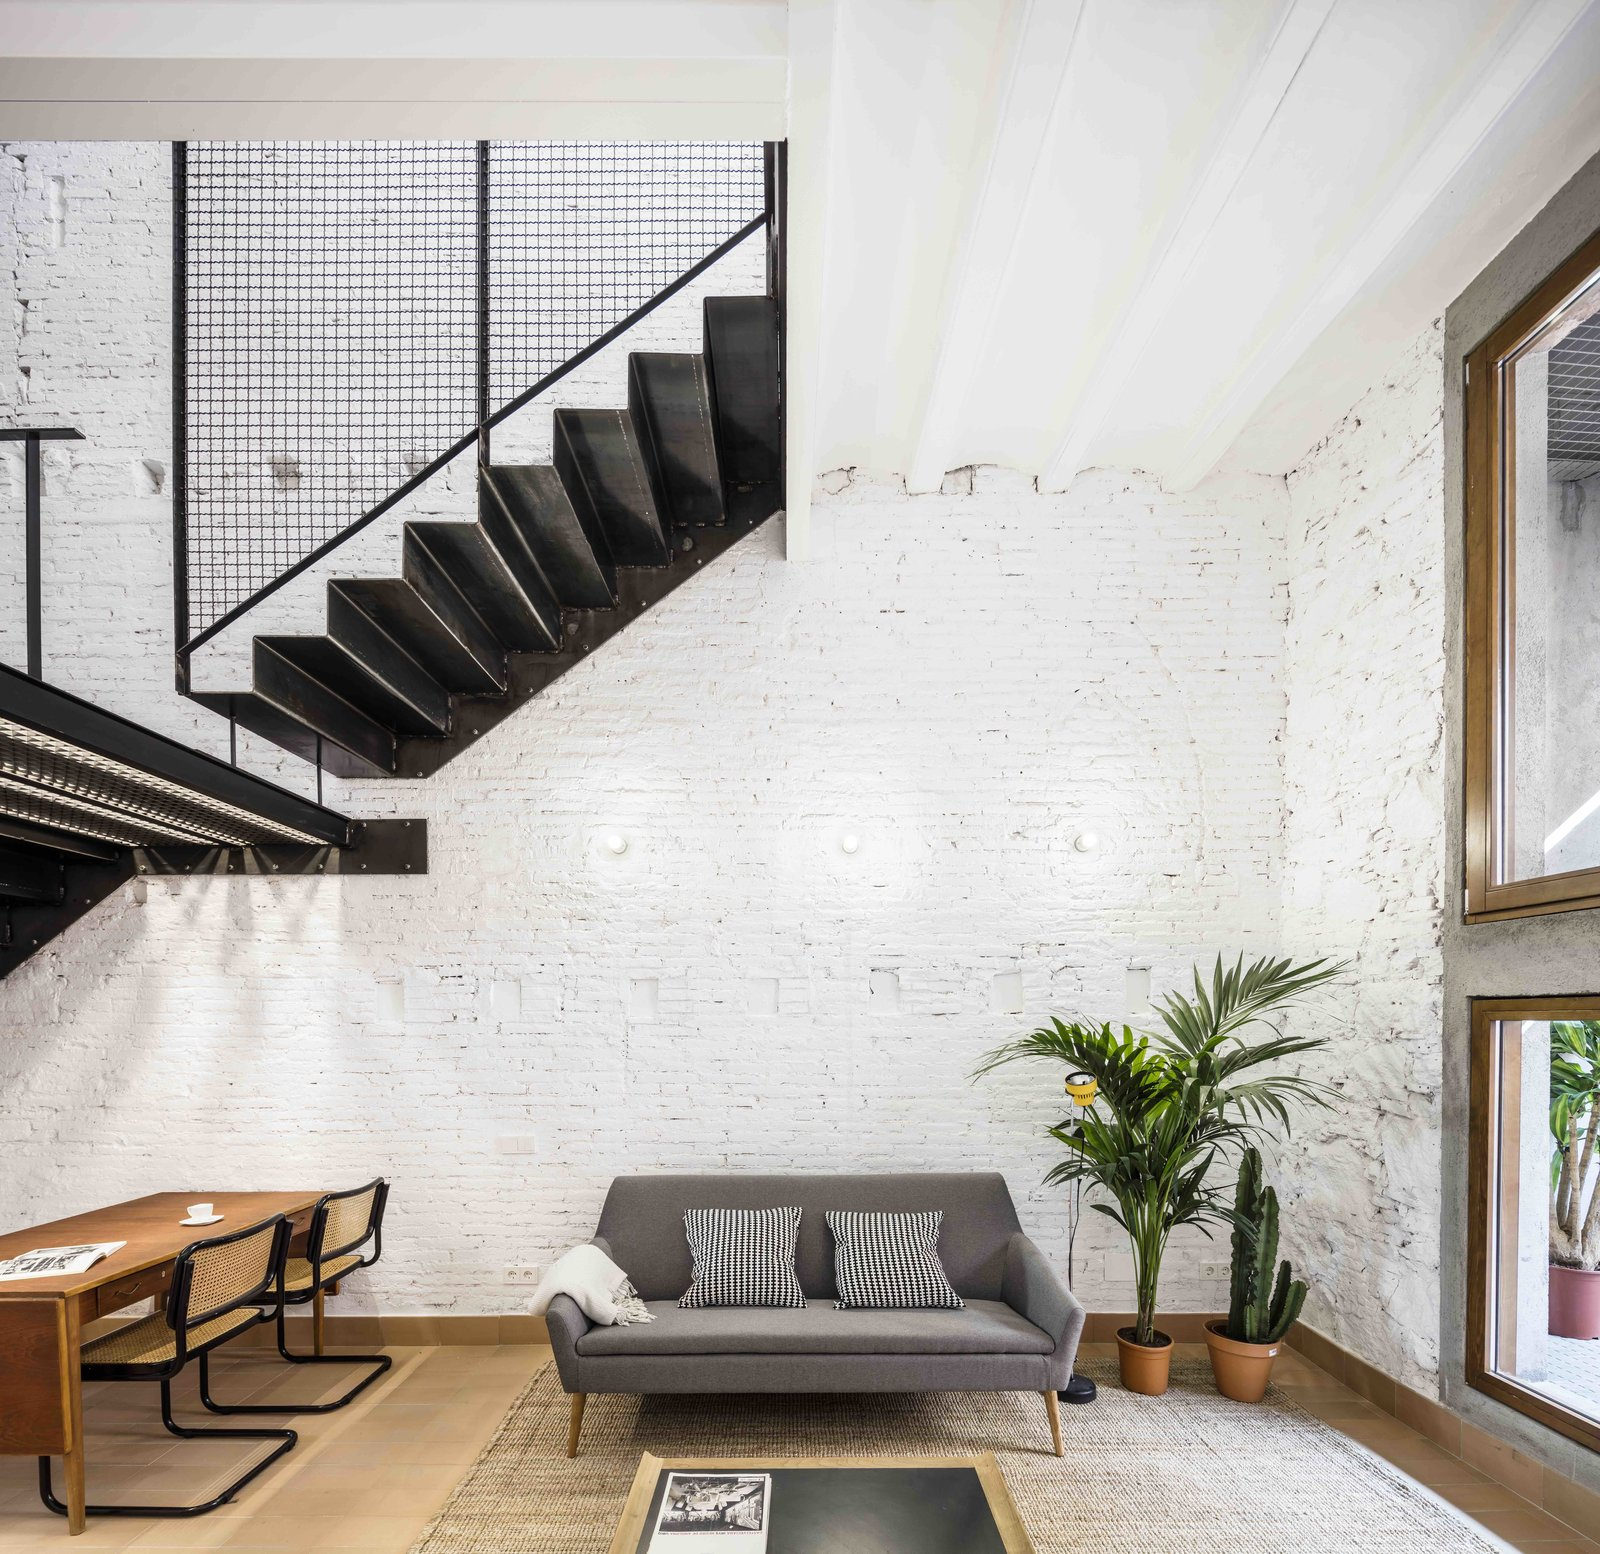 Living Room, Table, Chair, Sofa, Coffee Tables, and Wall Lighting  Photo 13 of 13 in This Double-Height Apartment in   Barcelona Features Historic Details and a Floating Staircase